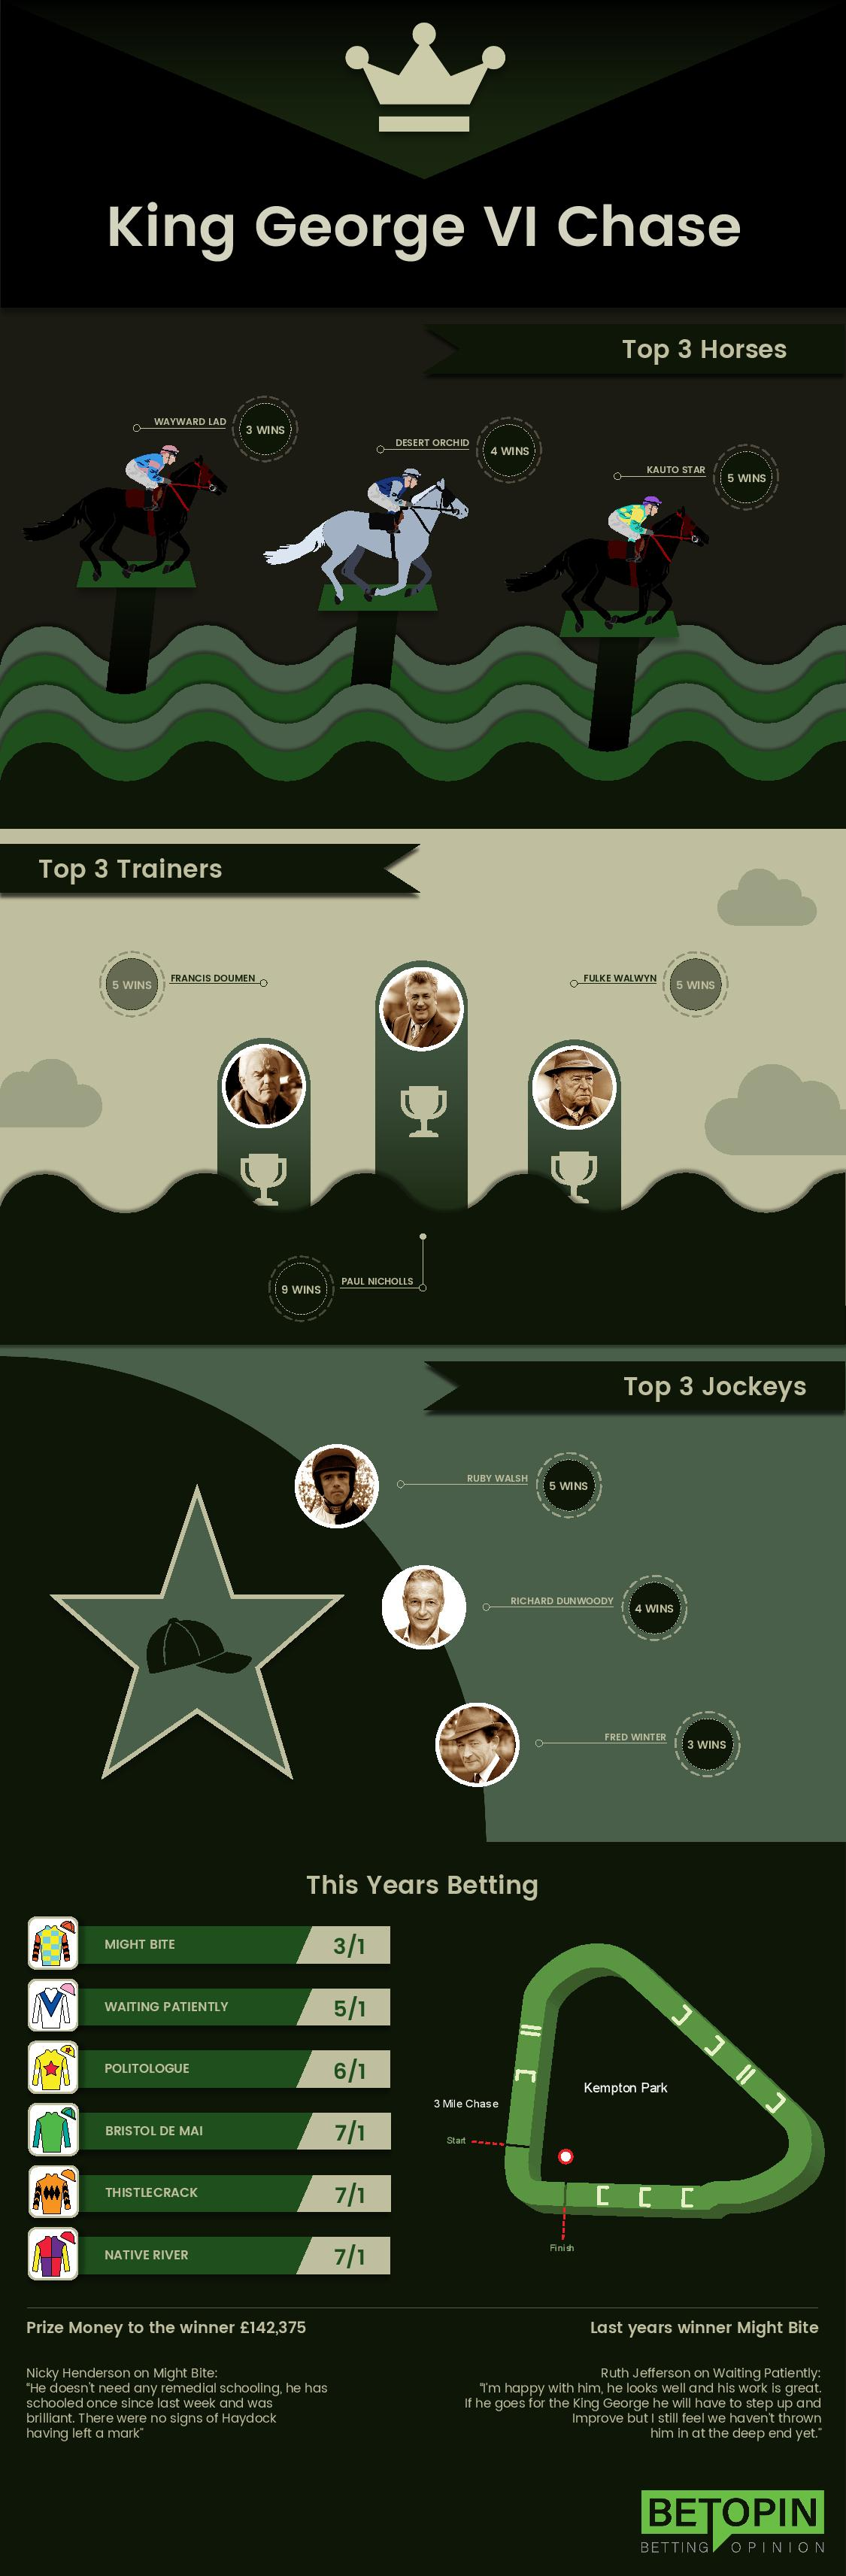 King George VI Chase Infographic from Betopin.com